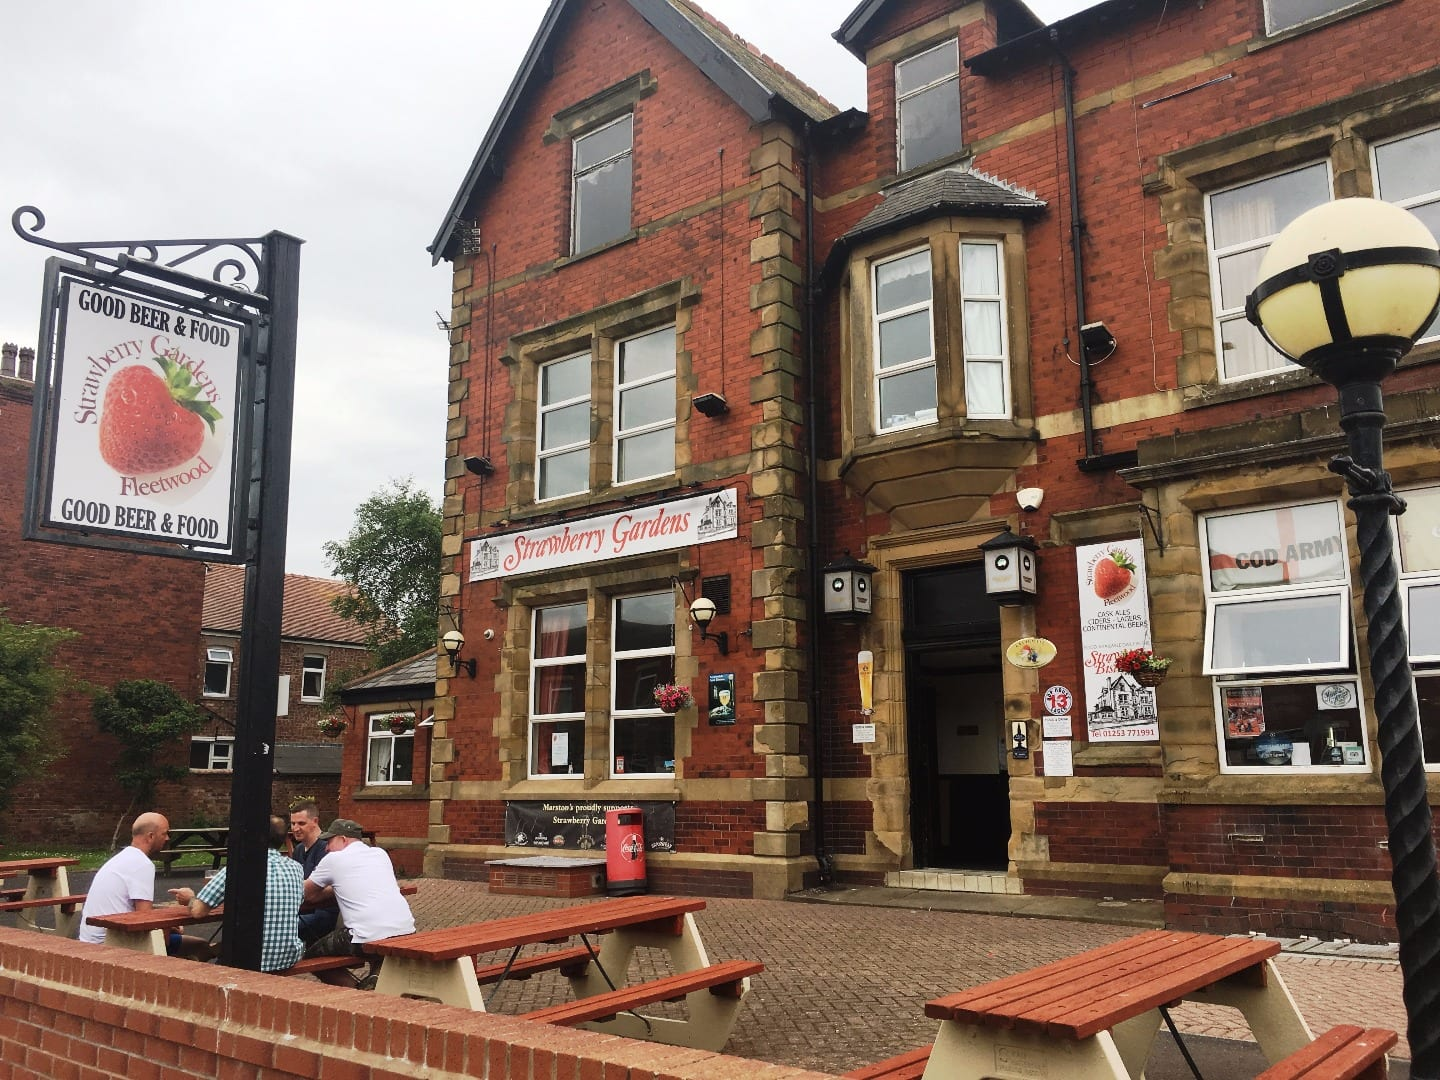 Strawberry Gardens Pub and Bistro Fleetwood